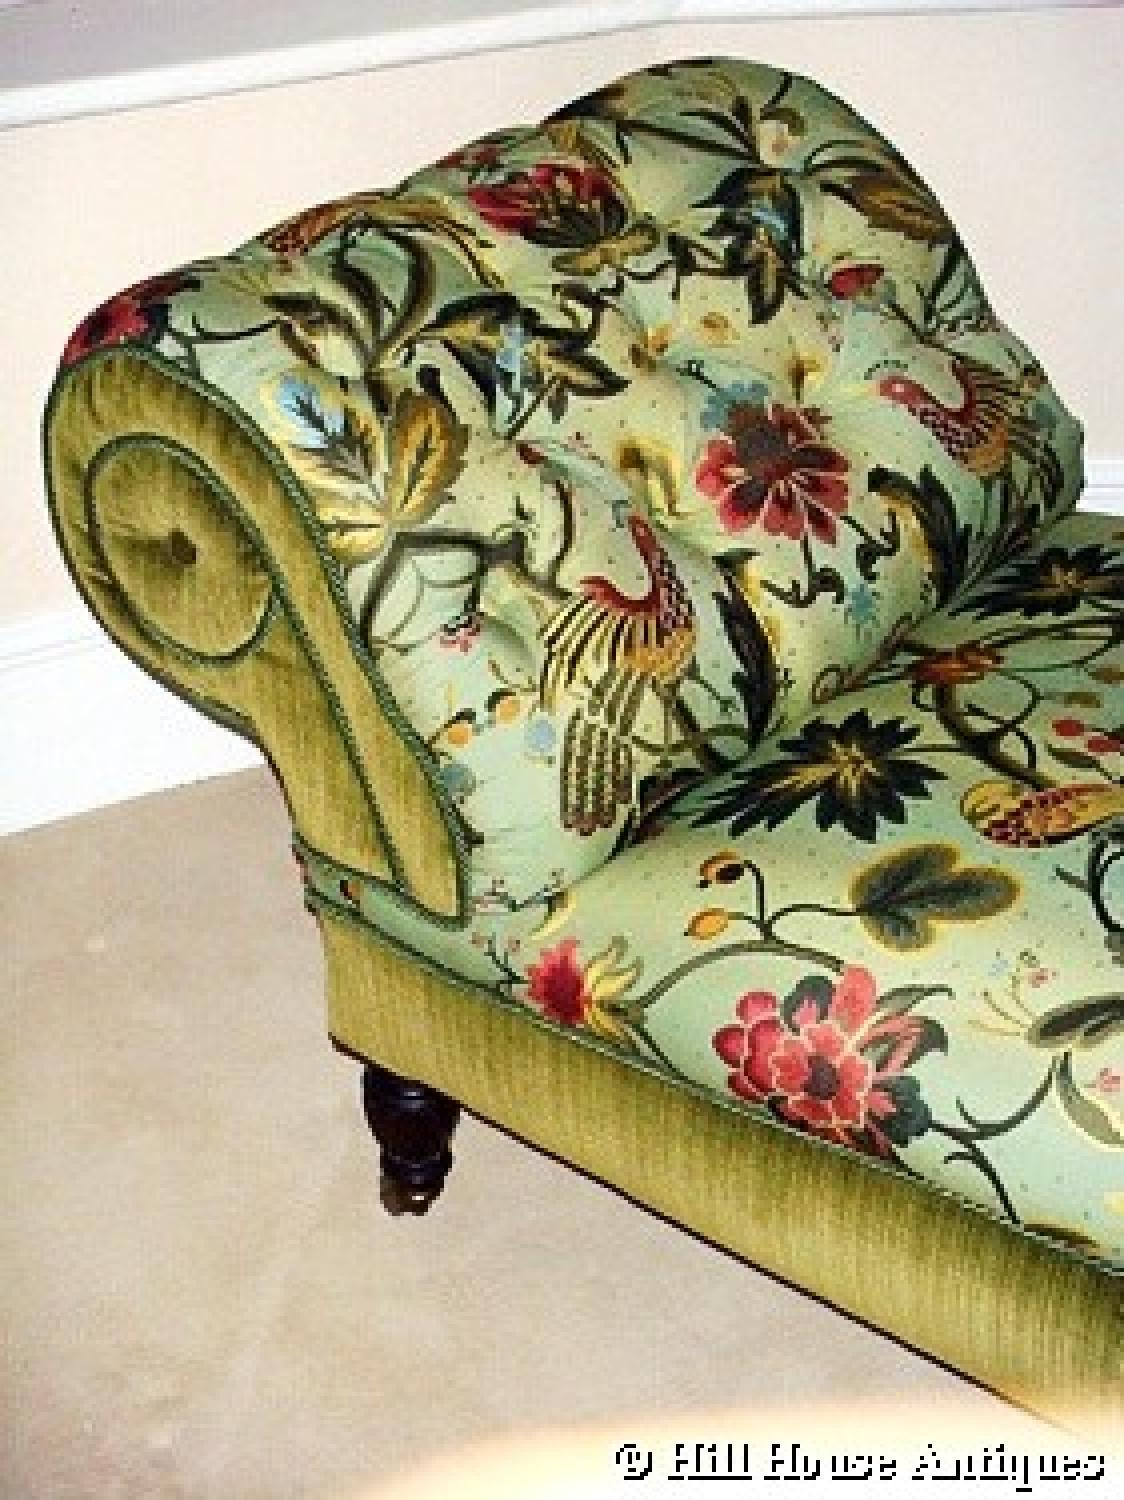 Rare Morris & Co chaise longue